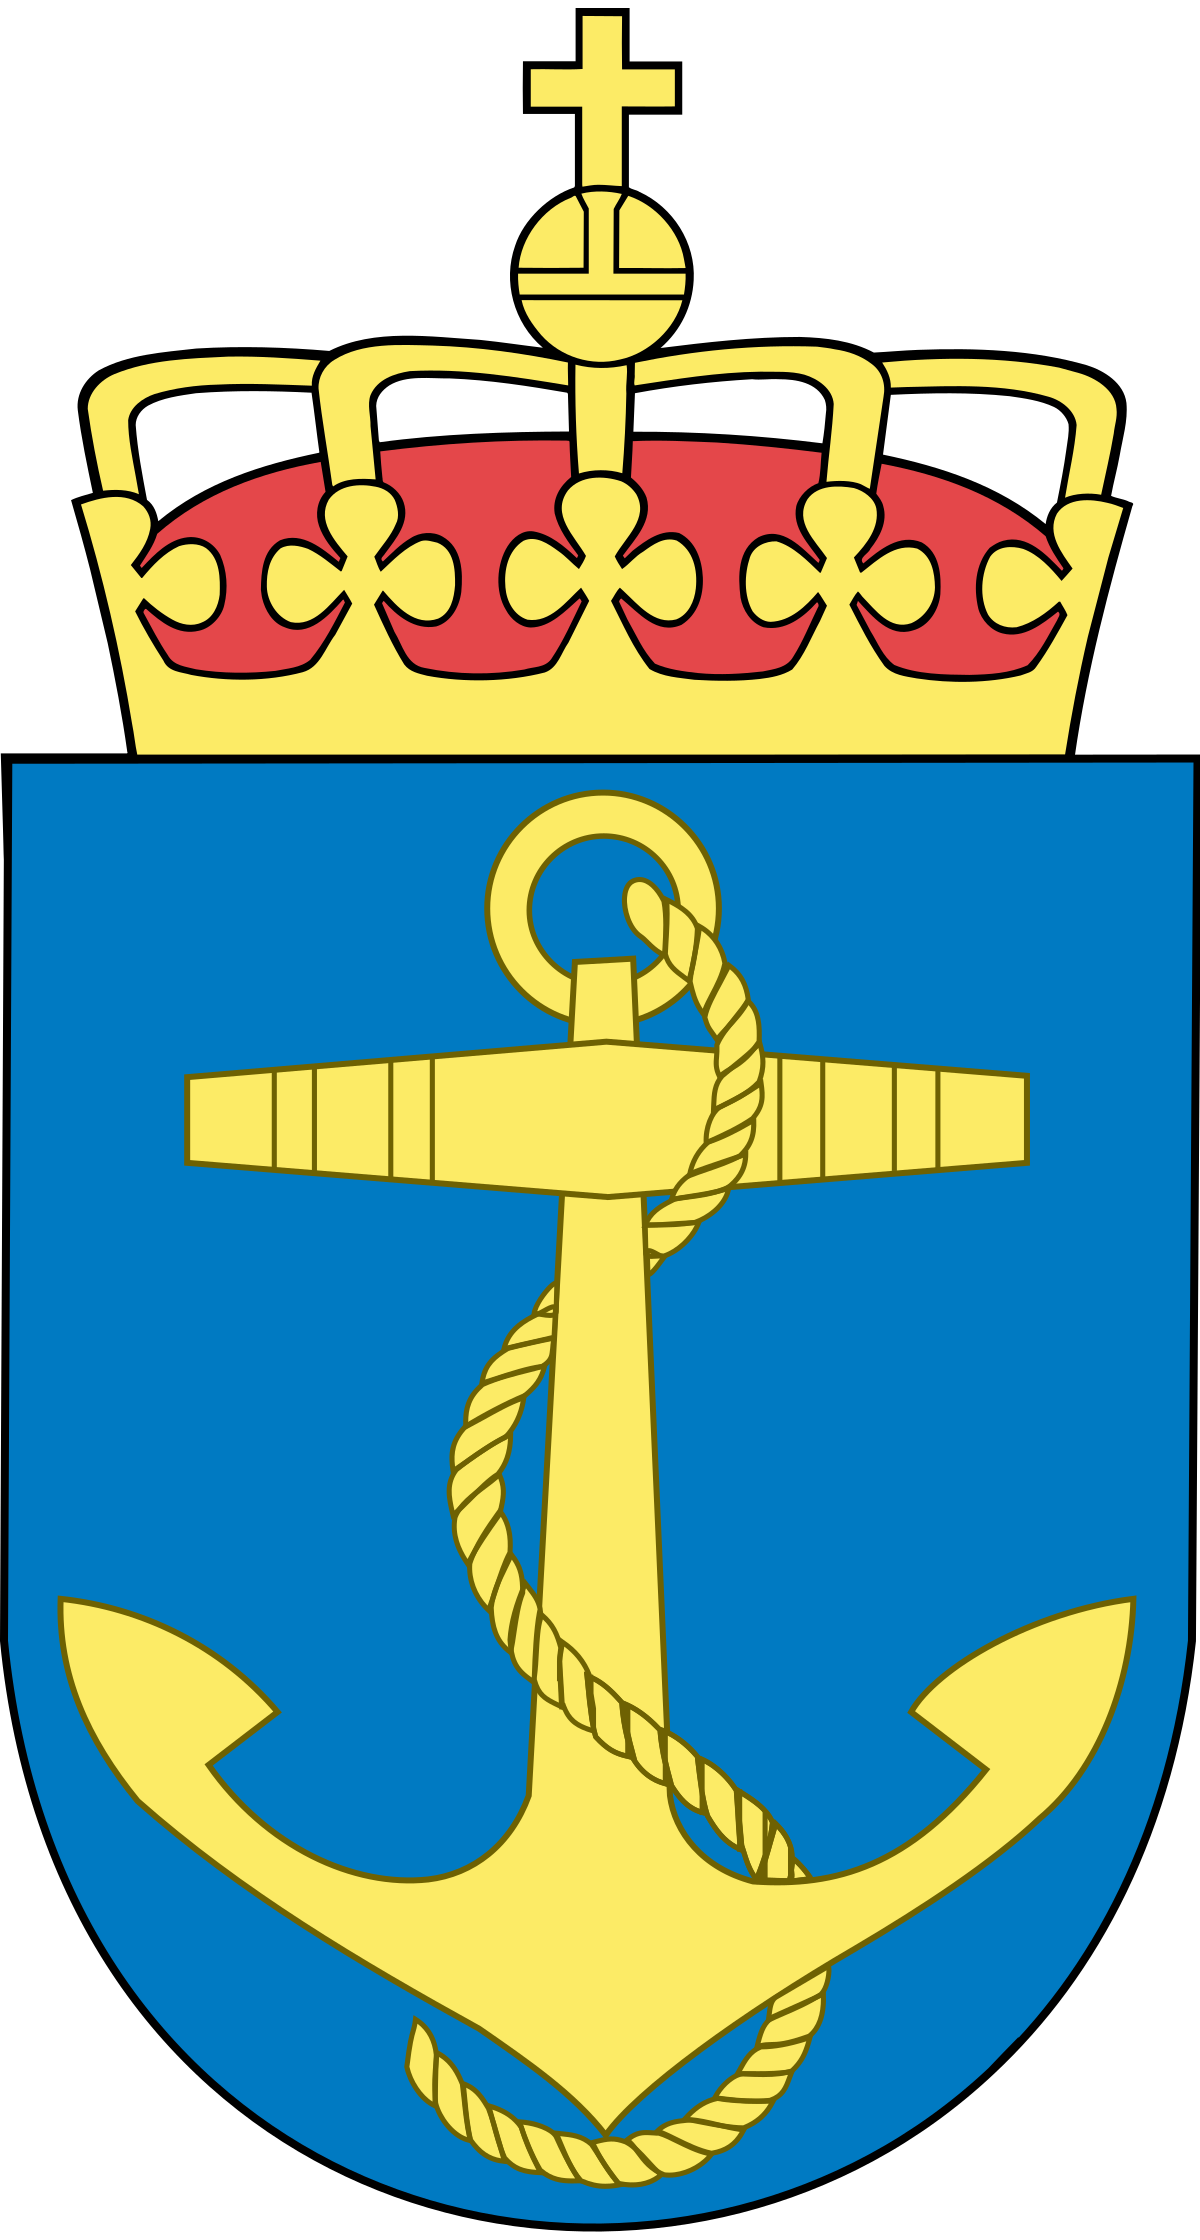 Royal norwegian wikipedia . Clipart anchor chief navy